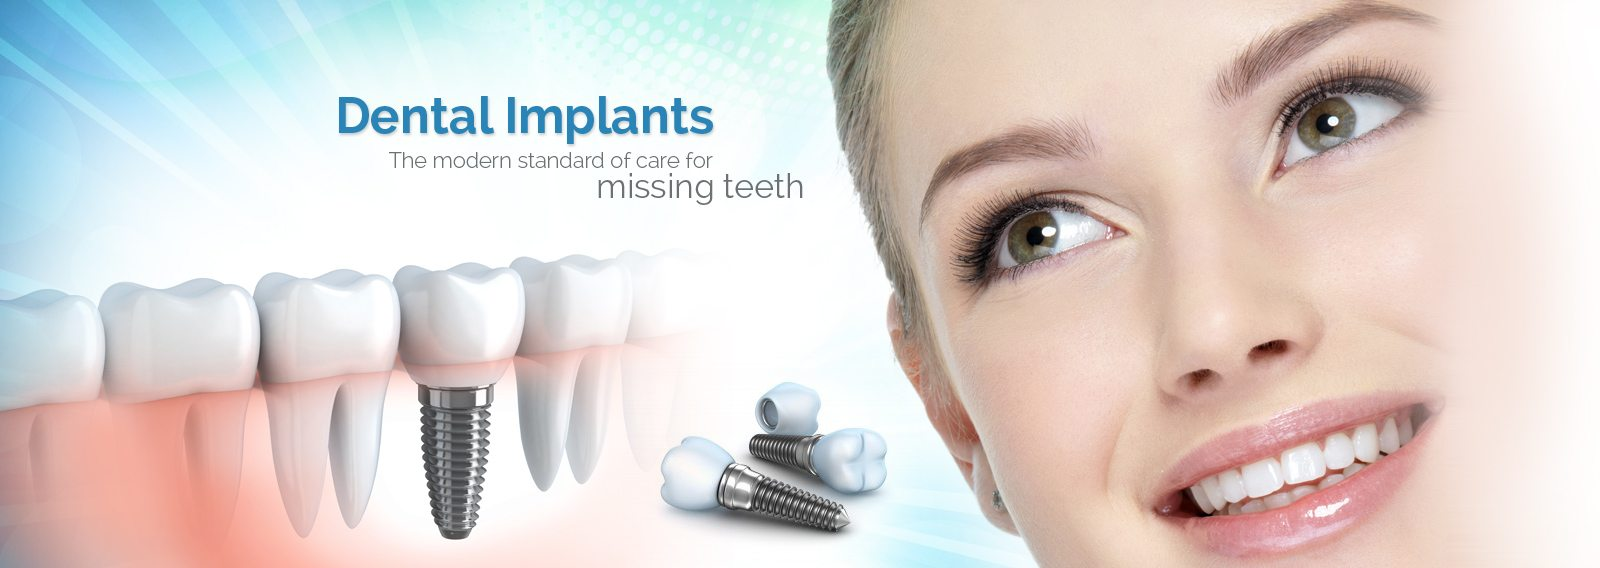 implant is the ideal solution